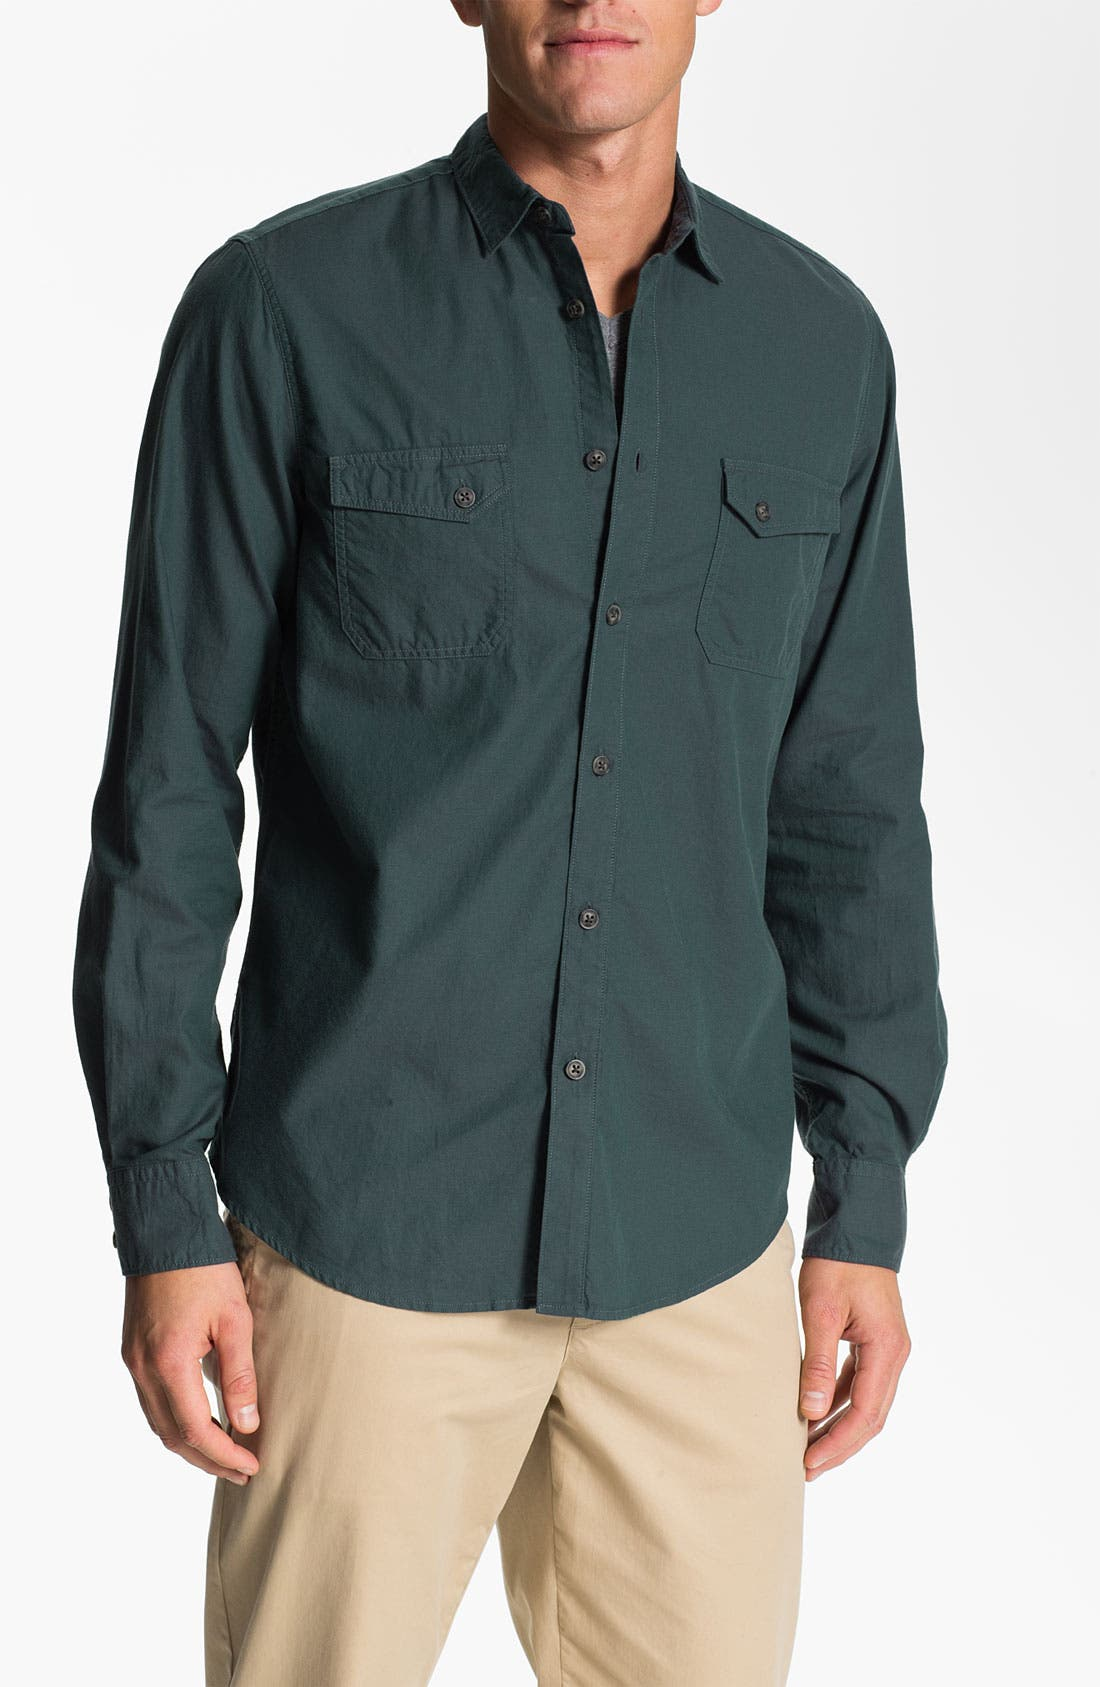 Alternate Image 1 Selected - Ben Sherman 'Shoreditch' Twill Shirt